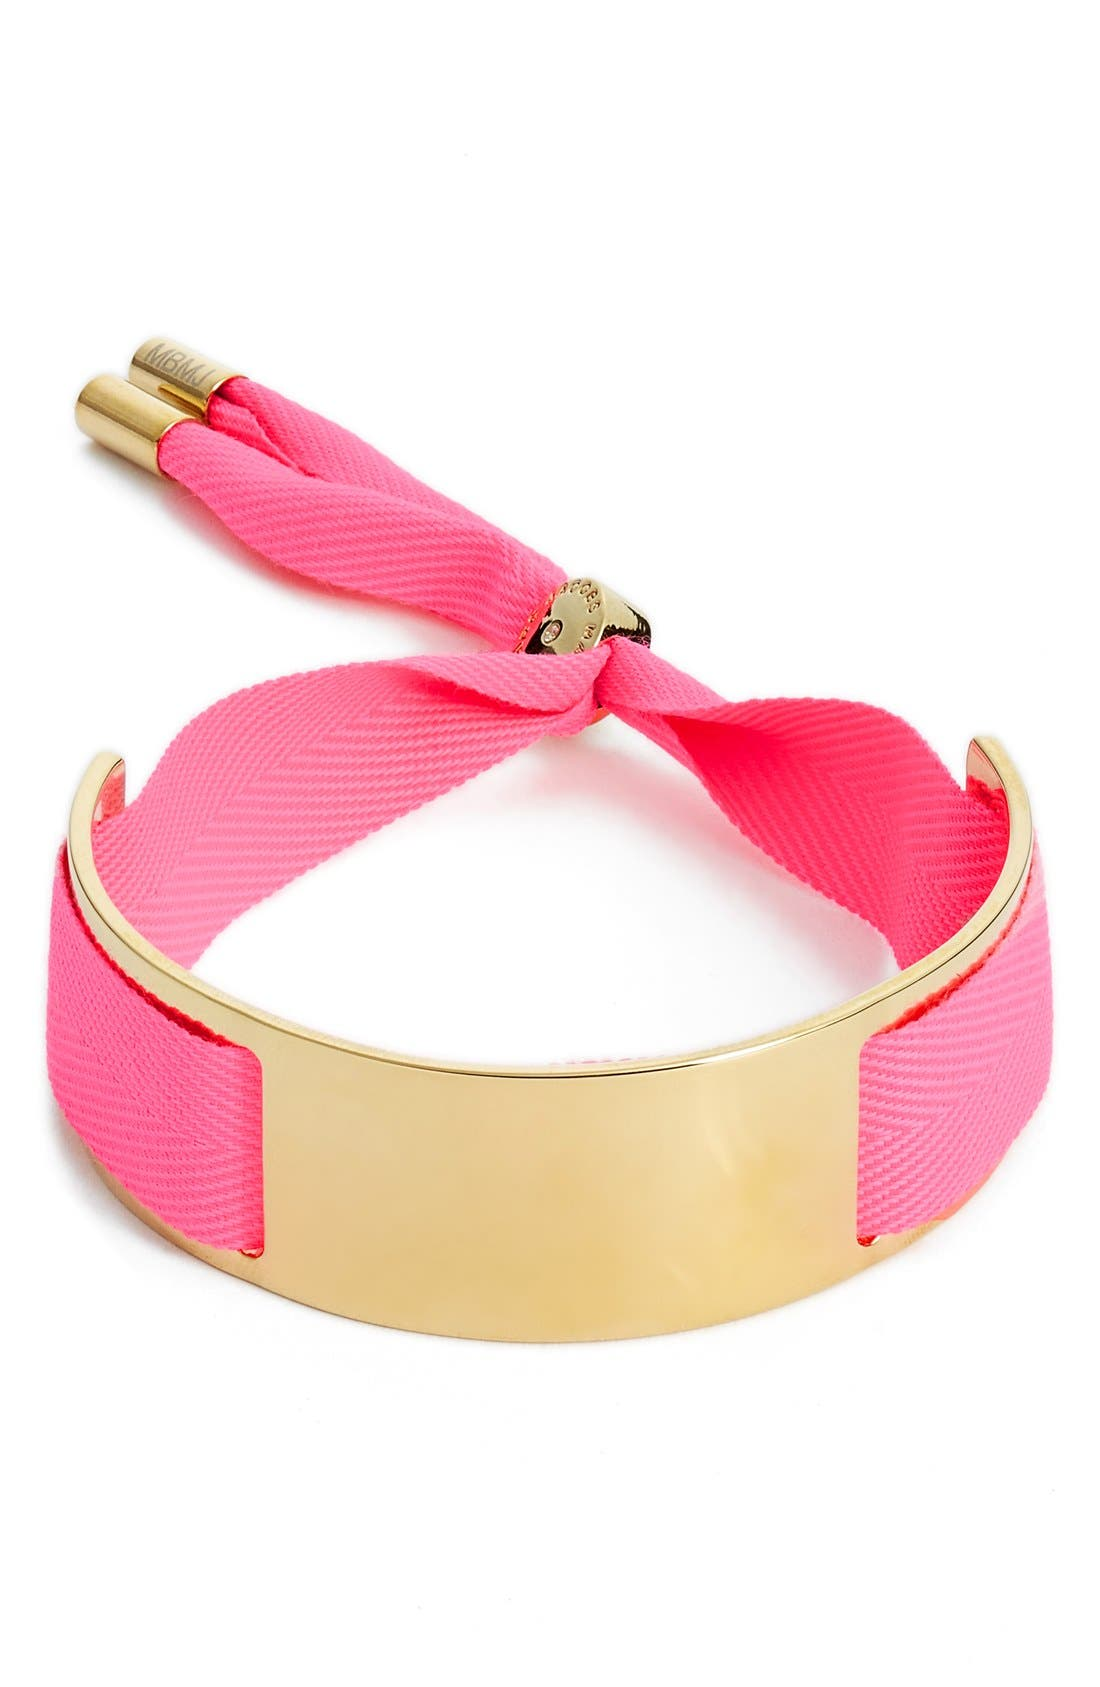 Main Image - MARC BY MARC JACOBS Ribbon Friendship Bracelet